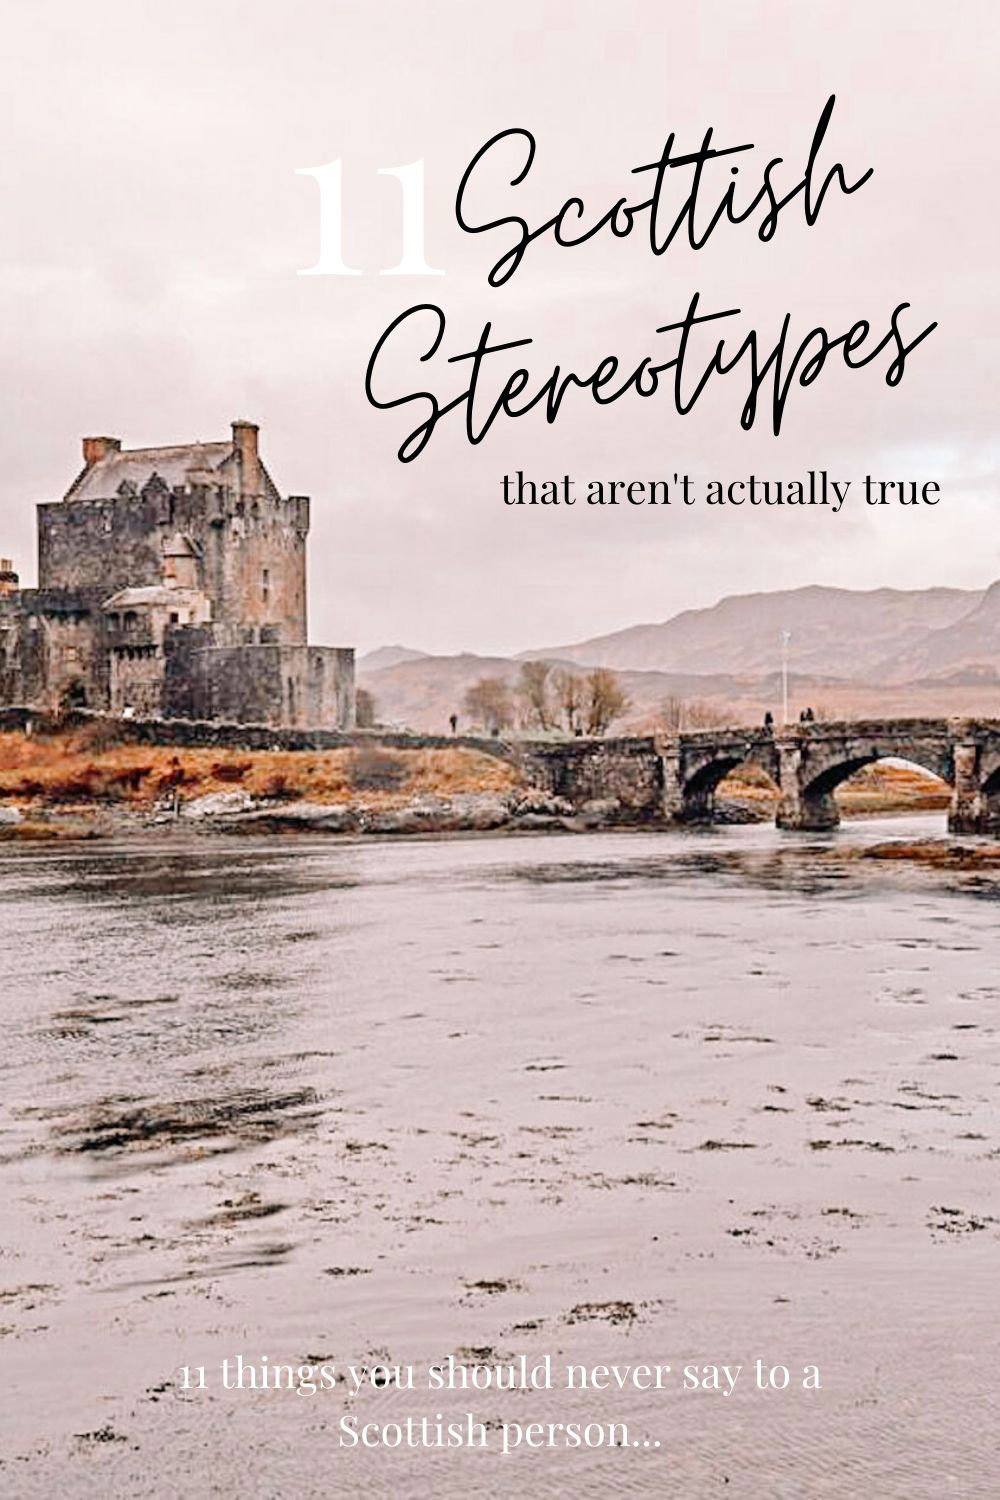 11 Scottish Stereotypes that aren't actually true